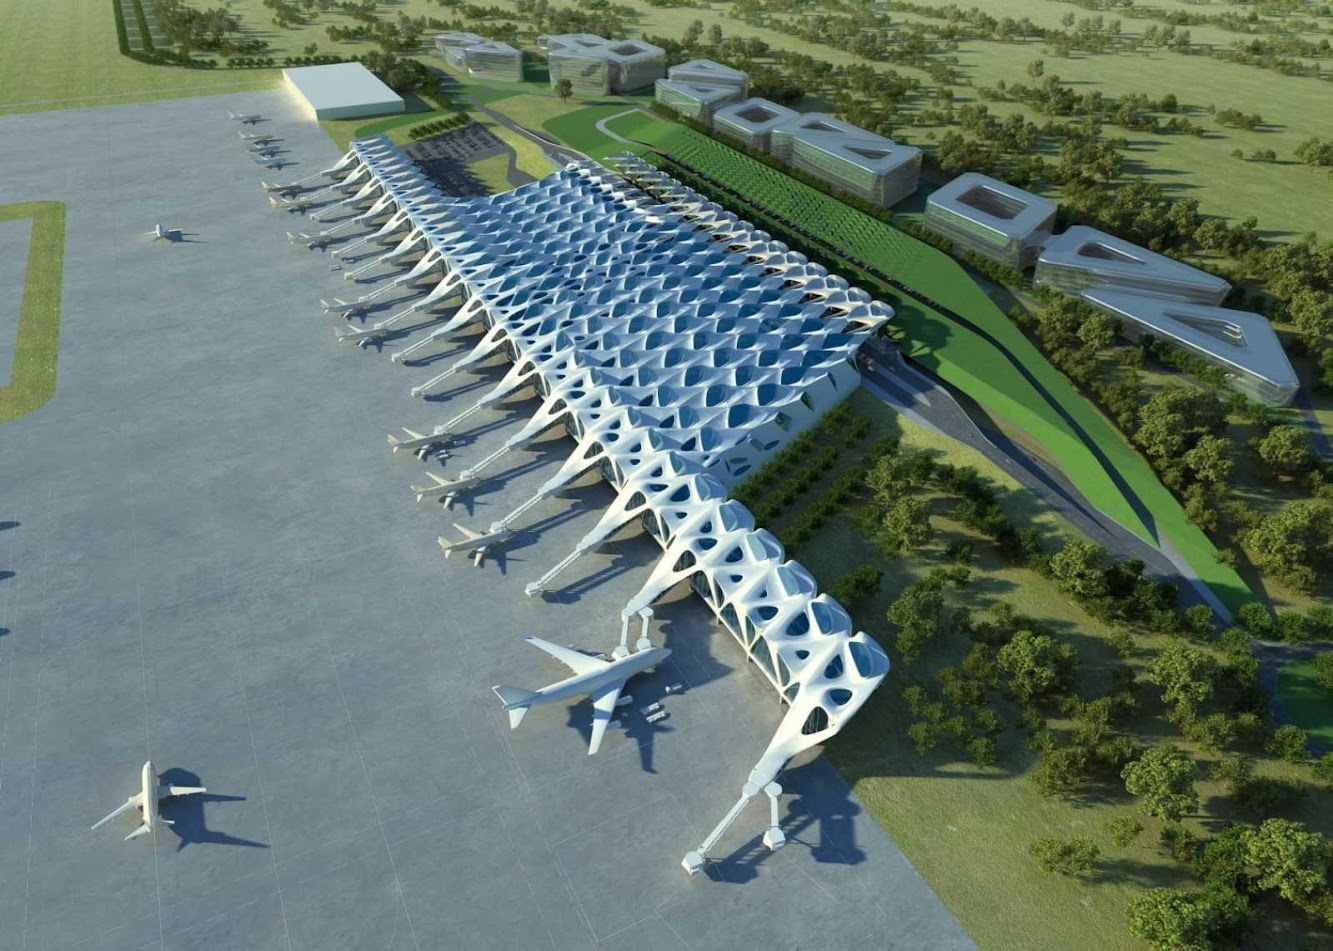 Londra, Regno Unito: New London Airport by Zaha Hadid